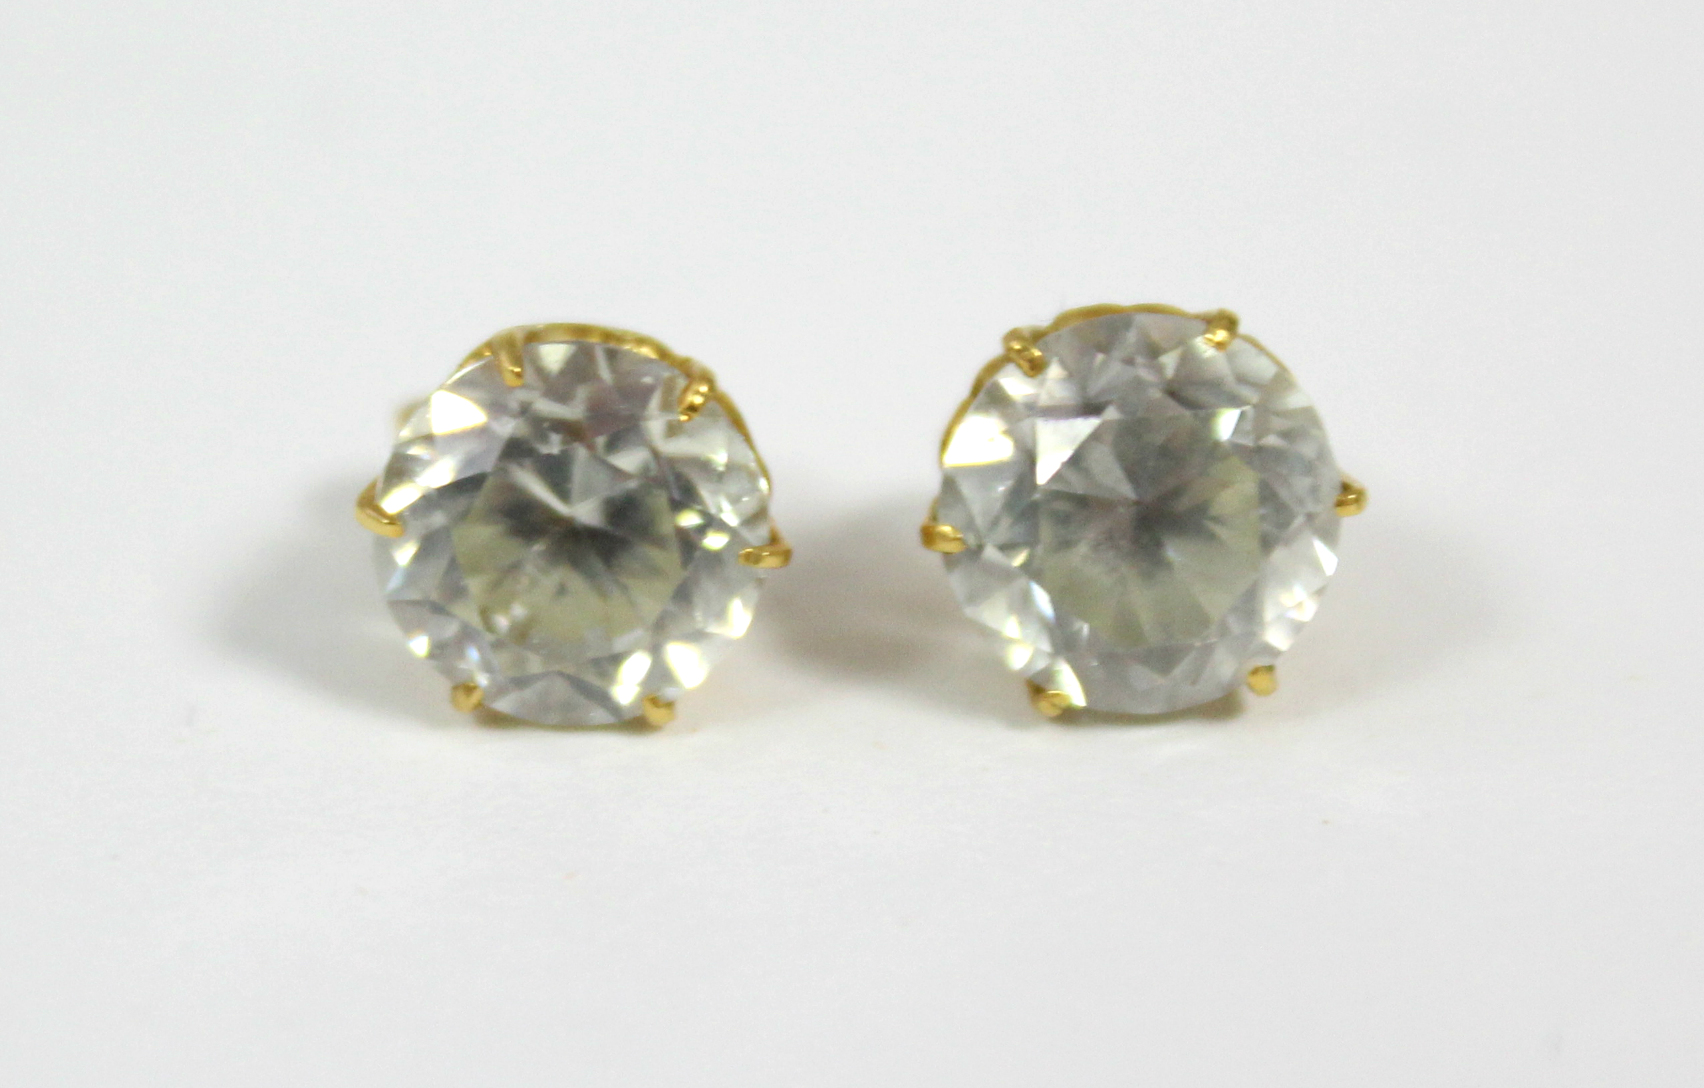 A pair of white topaz ear studs. - Image 2 of 3